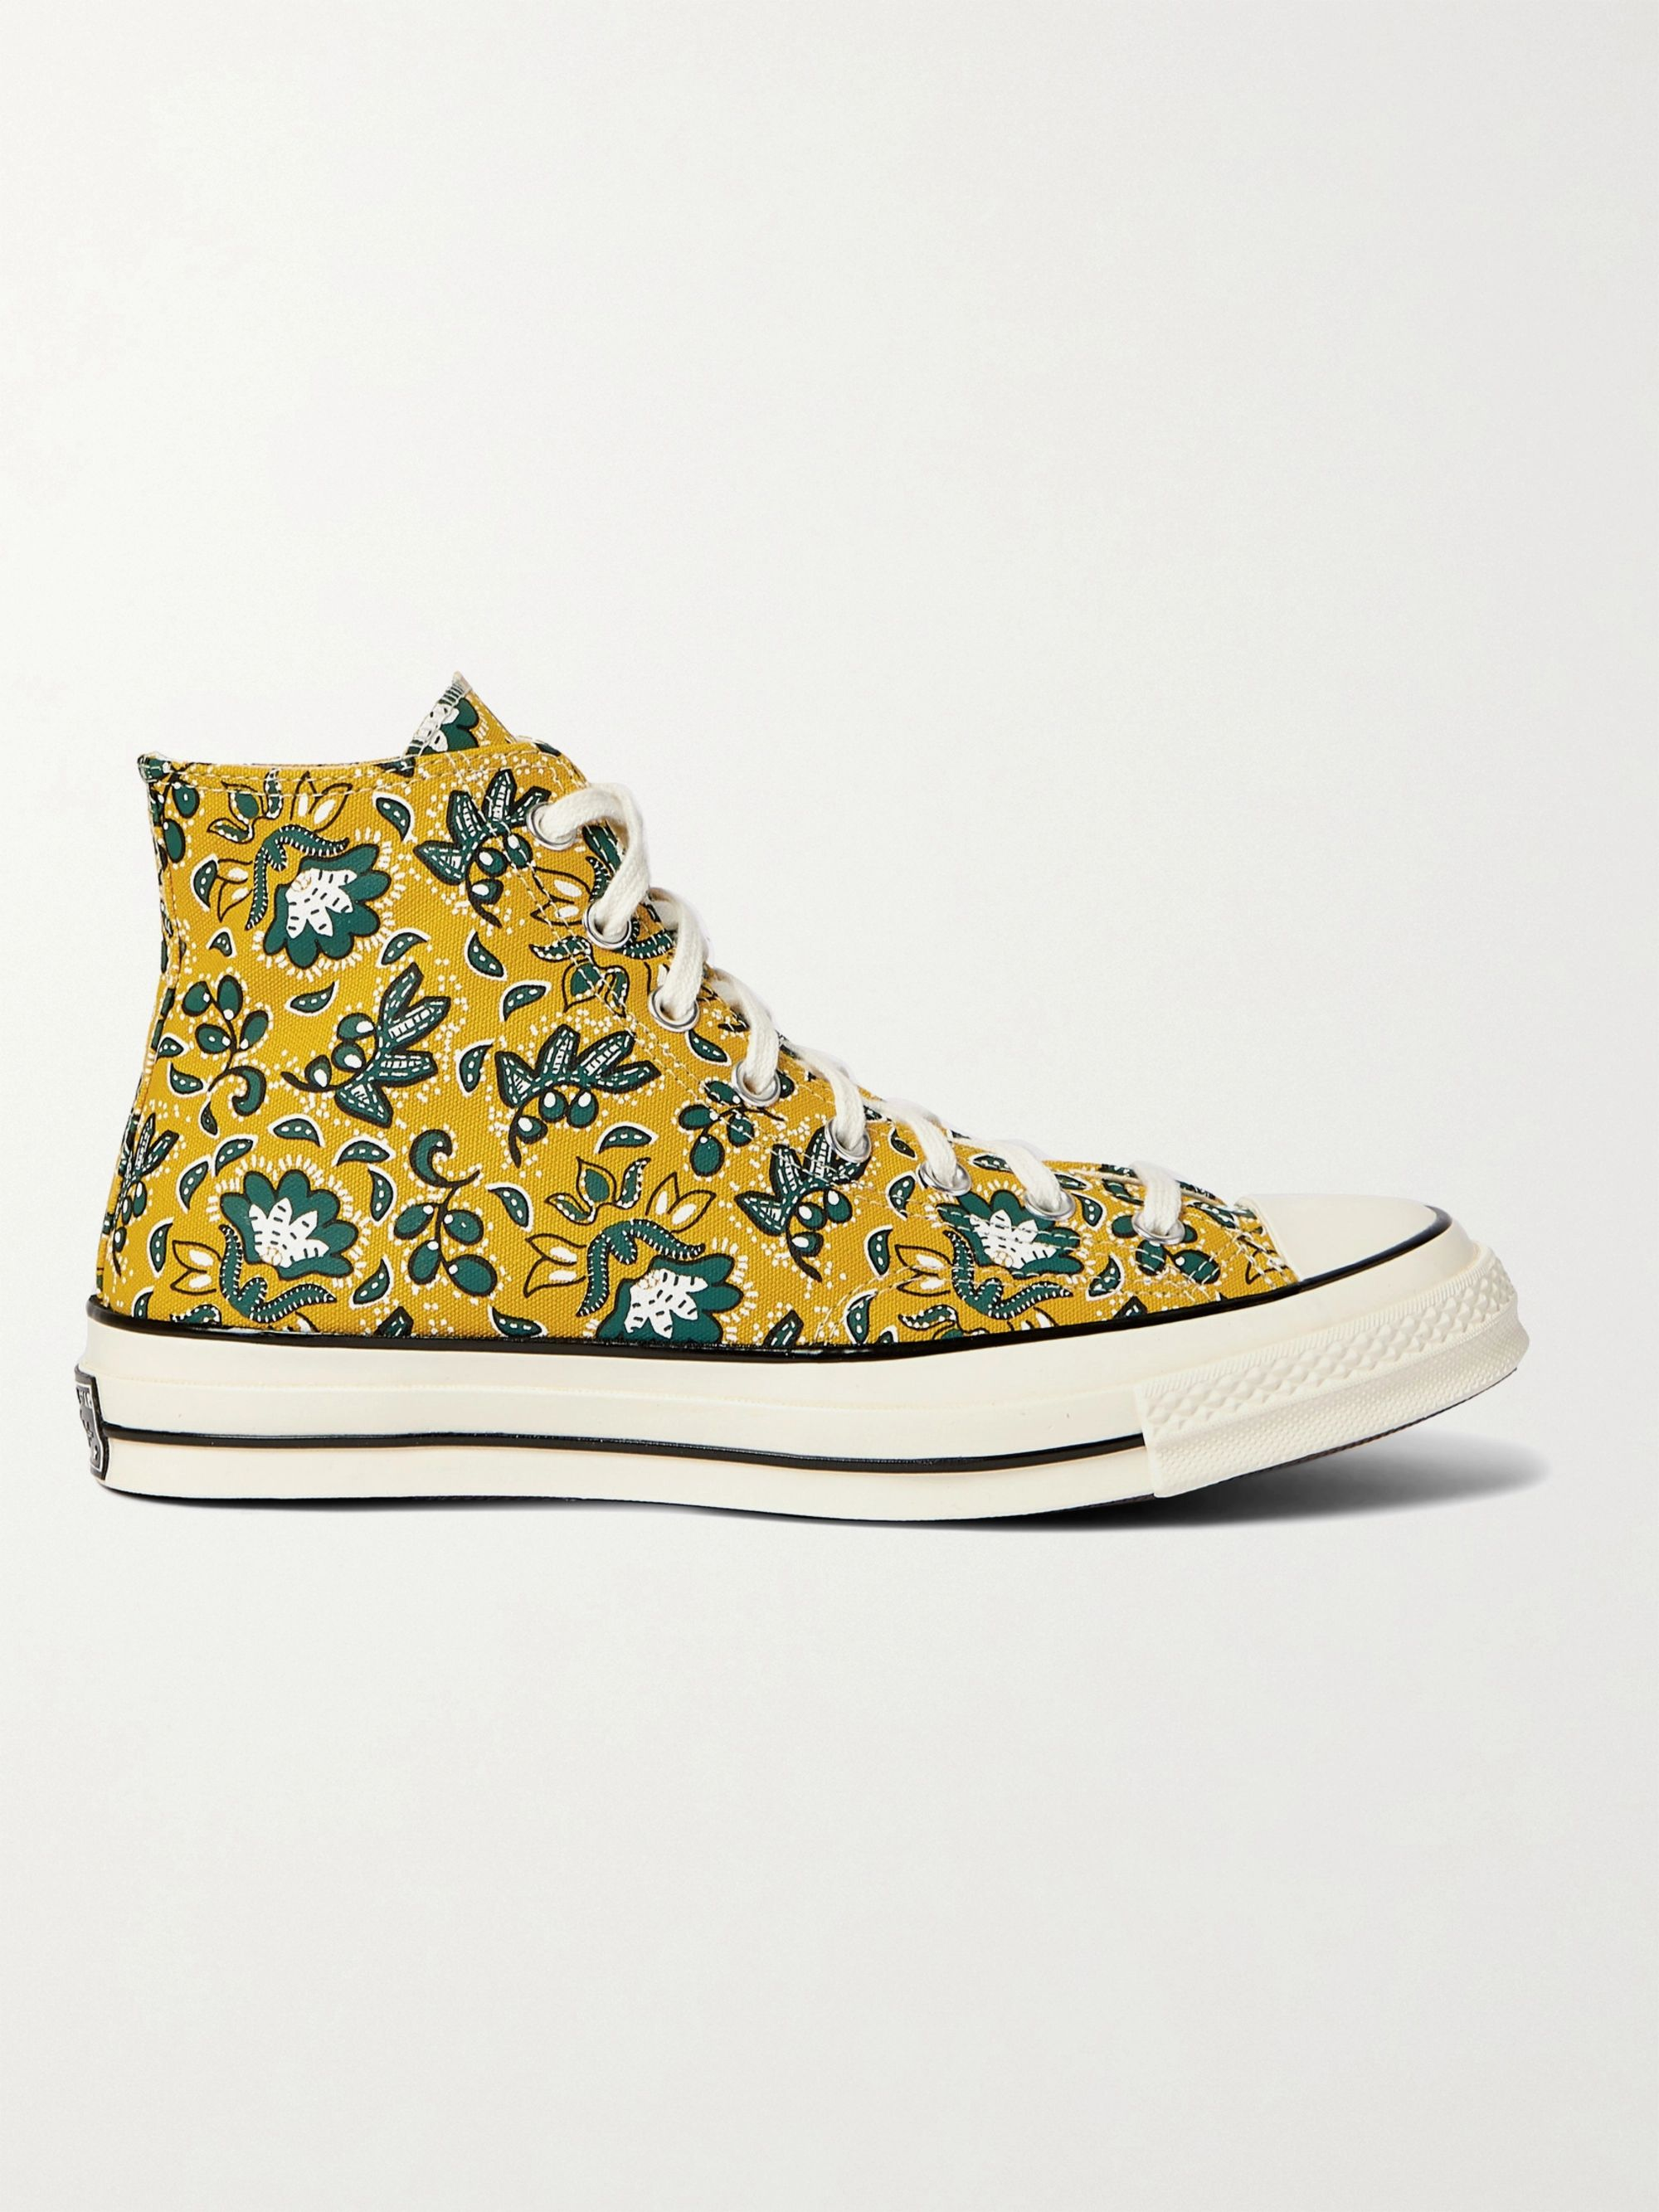 CONVERSE Chuck 70 Paisley-Print Canvas High-Top Sneakers